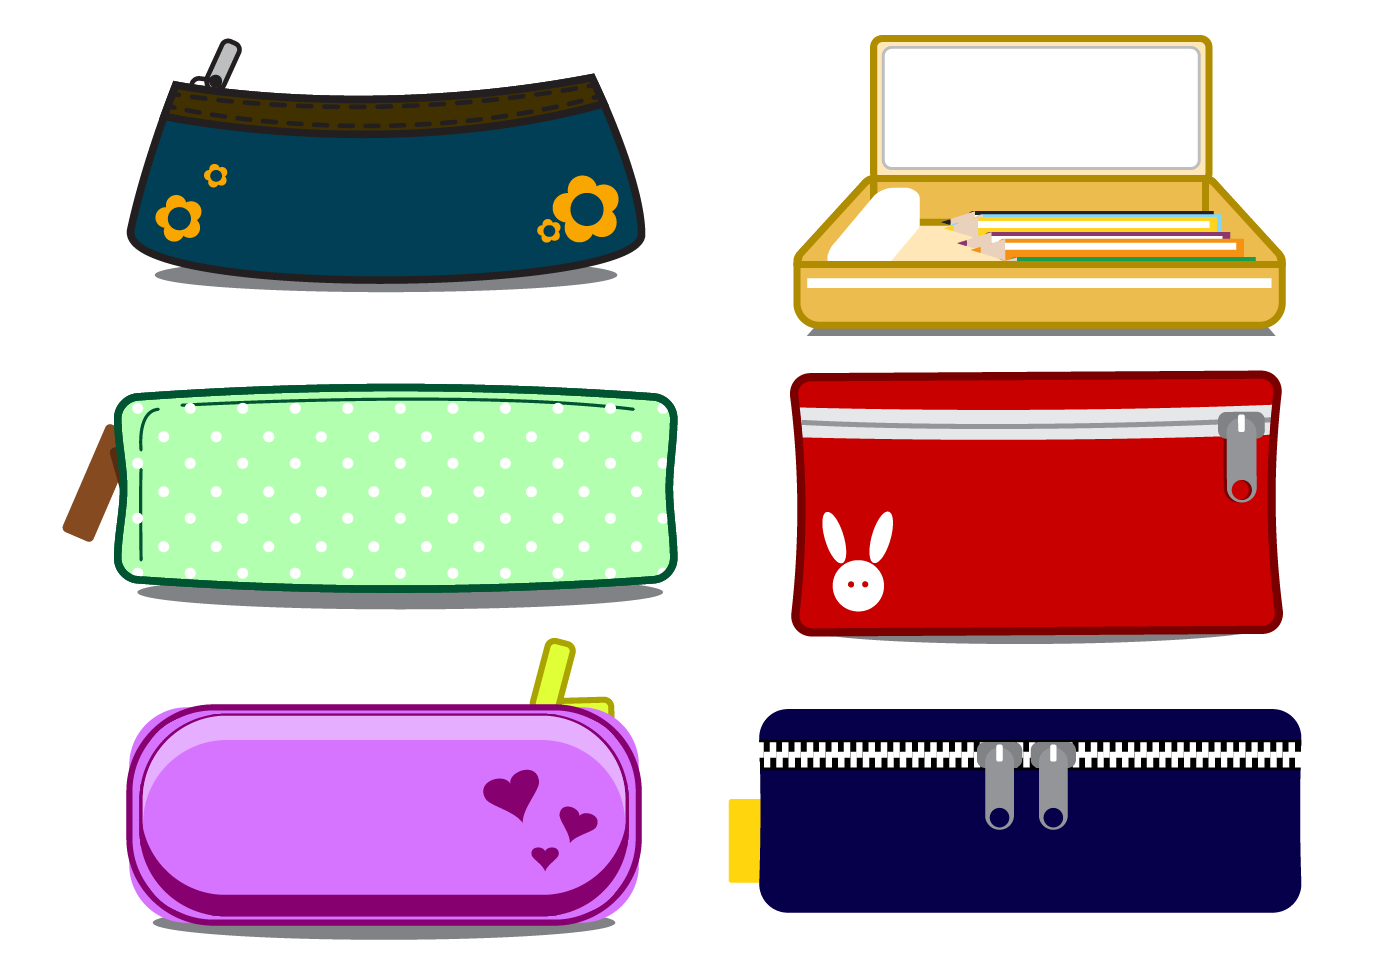 Pencil case clipart free royalty free download Student with pencil box clipart - ClipartFox royalty free download